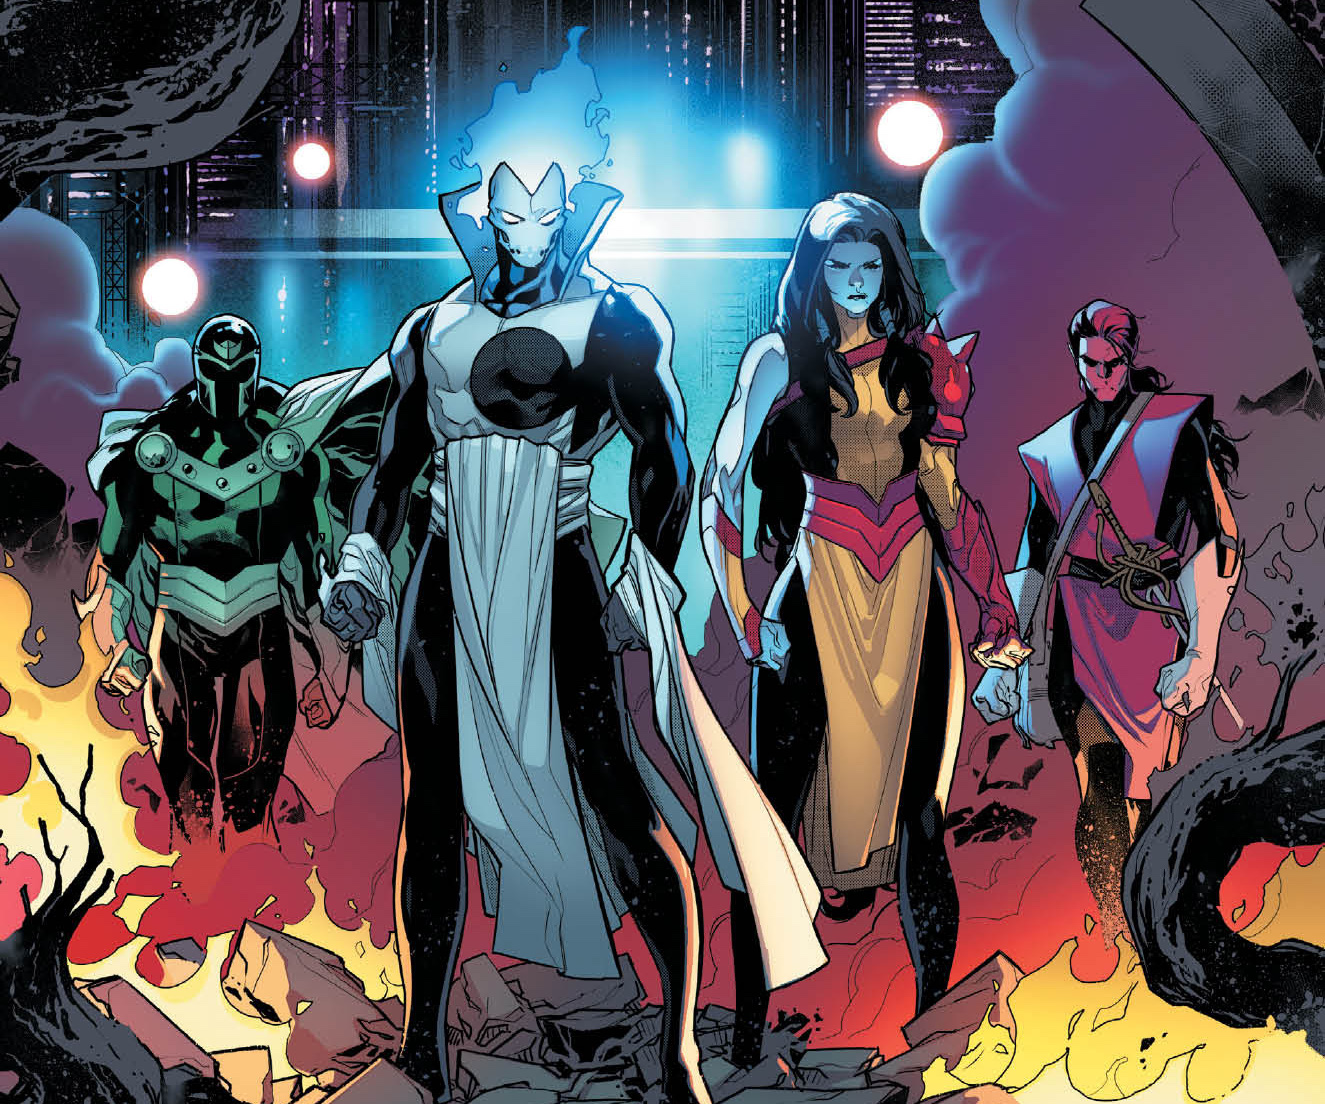 Marvel's radical rethinking of X-Men is the galaxy-brain sci-fi that comics deserve